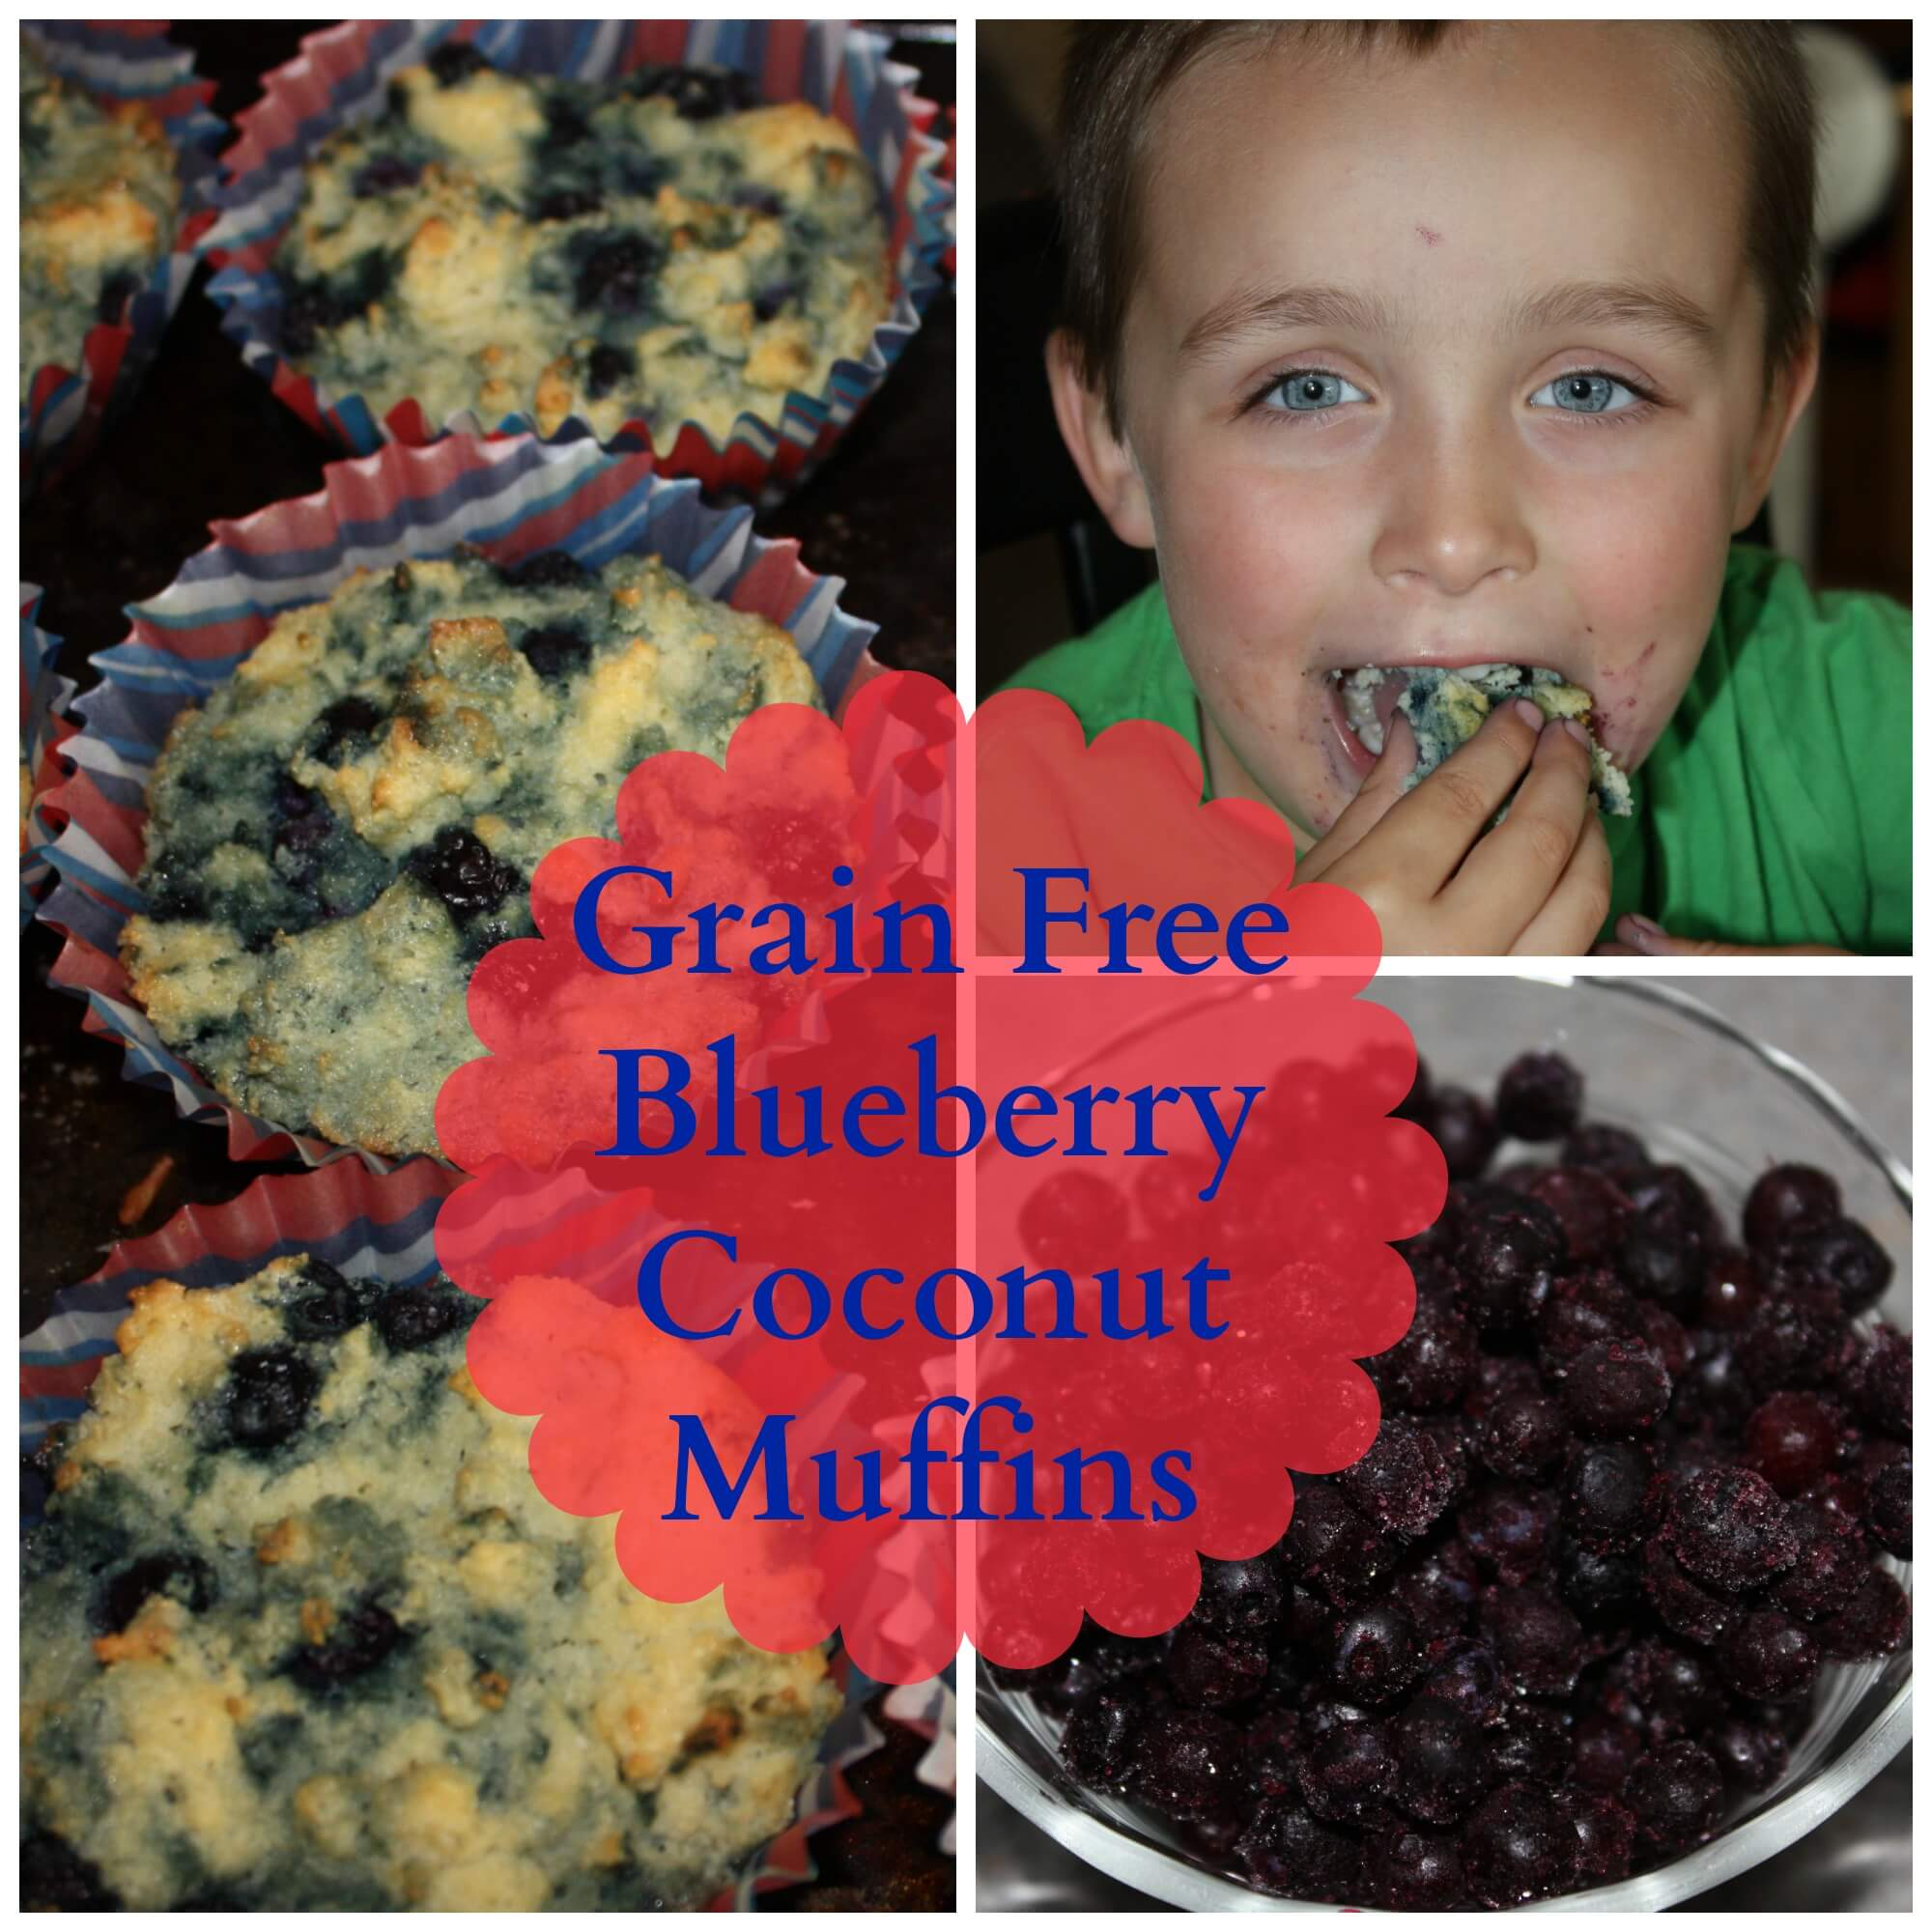 Wordless Wednesday: Baking Grain Free Together